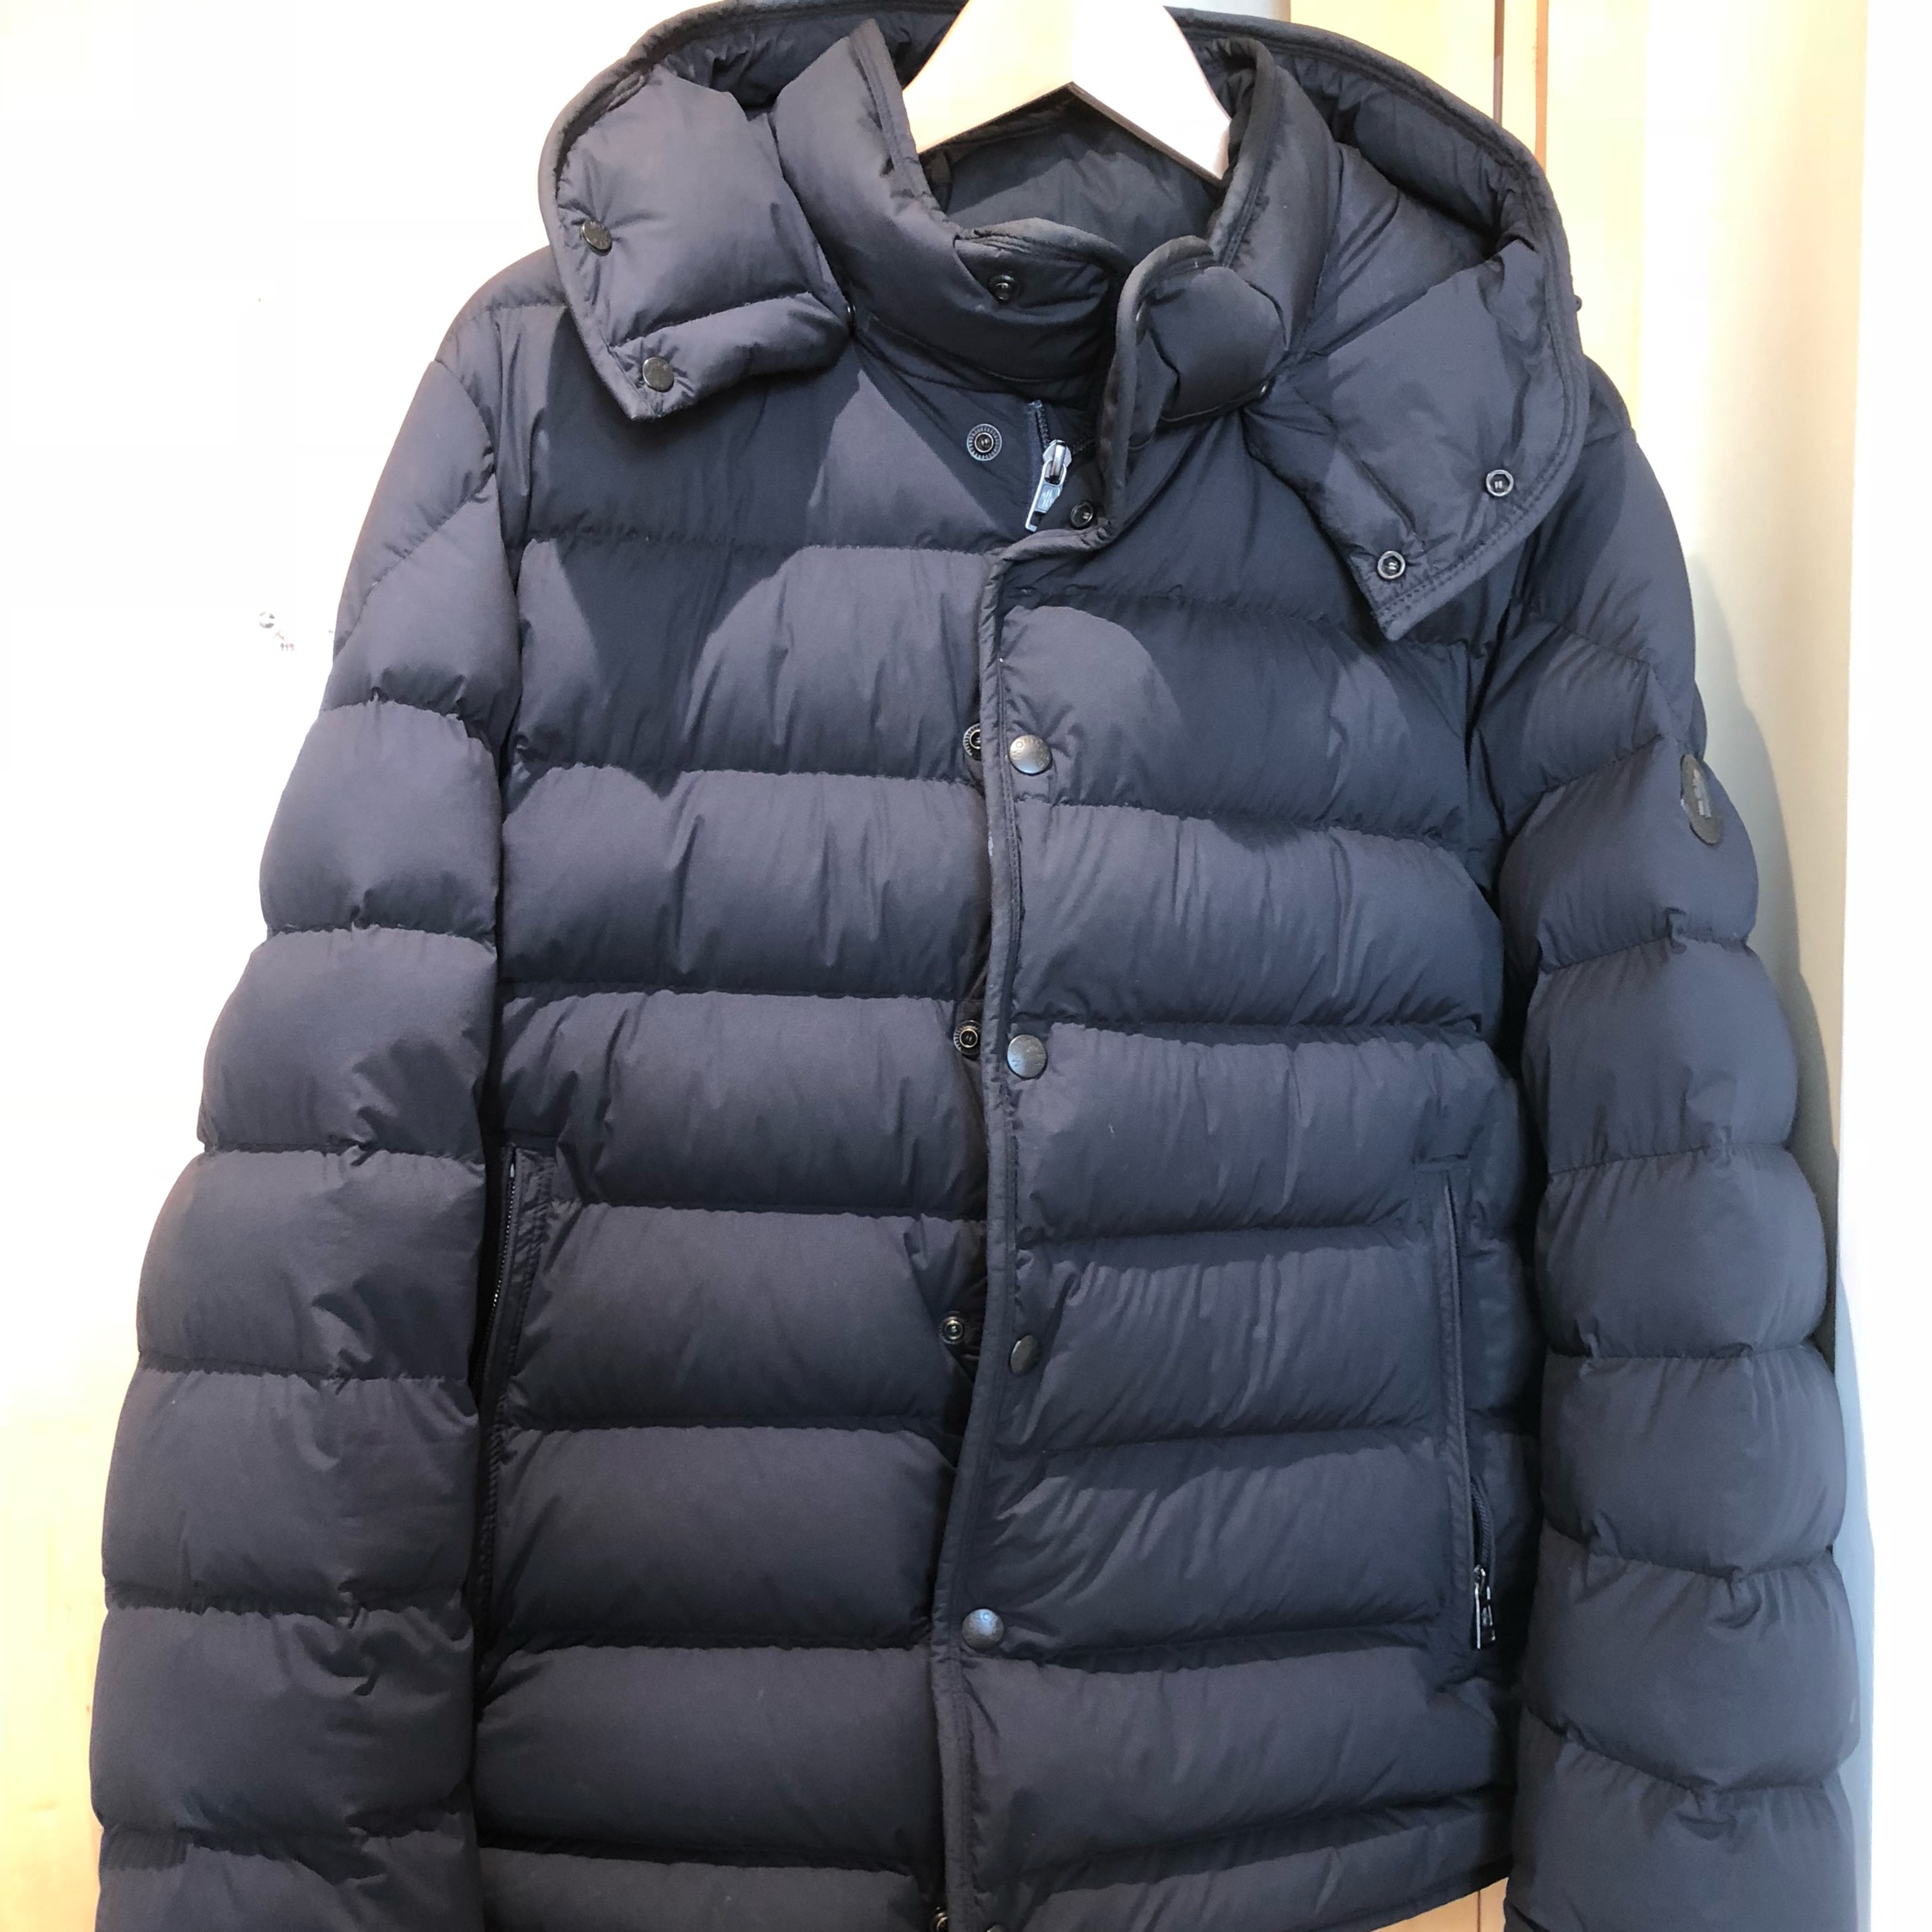 lowest discount select for original shop for official Authentic Small Mens Moncler Navy Puffer Jacket